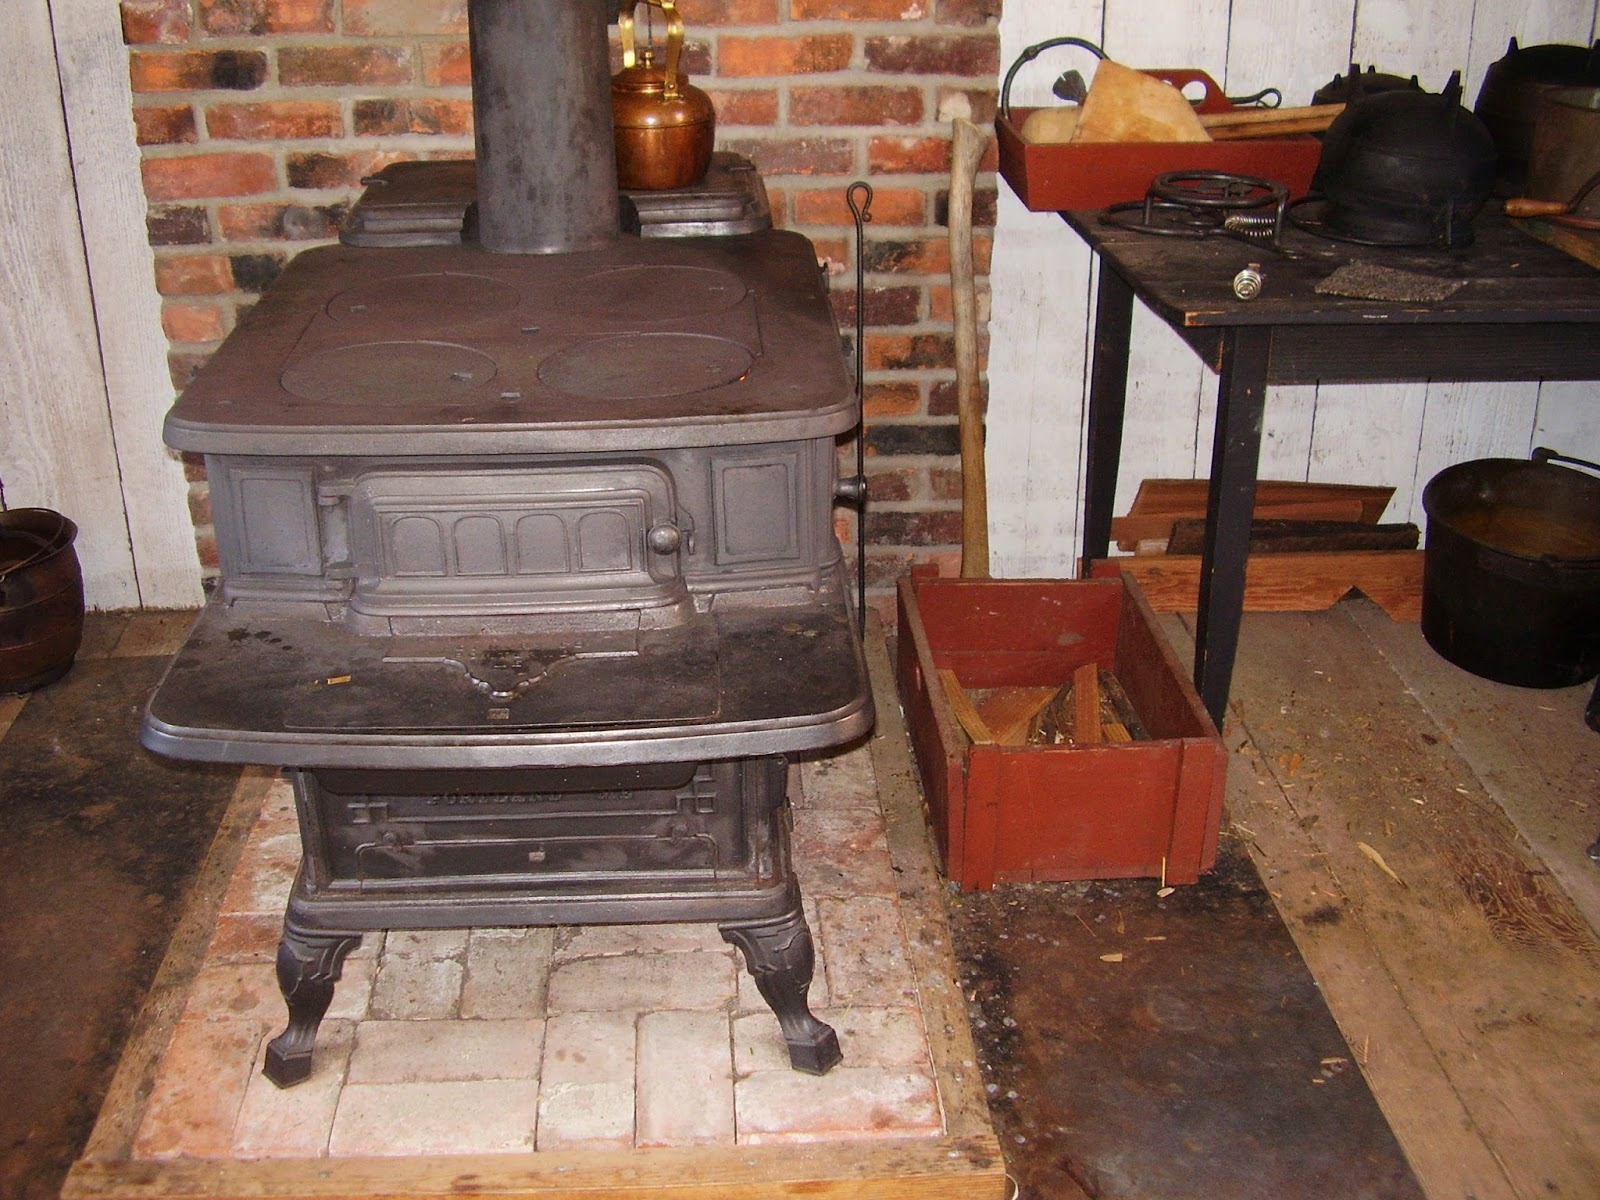 Wood-burning cook-stove, 1850s, at Fort Nisqually.